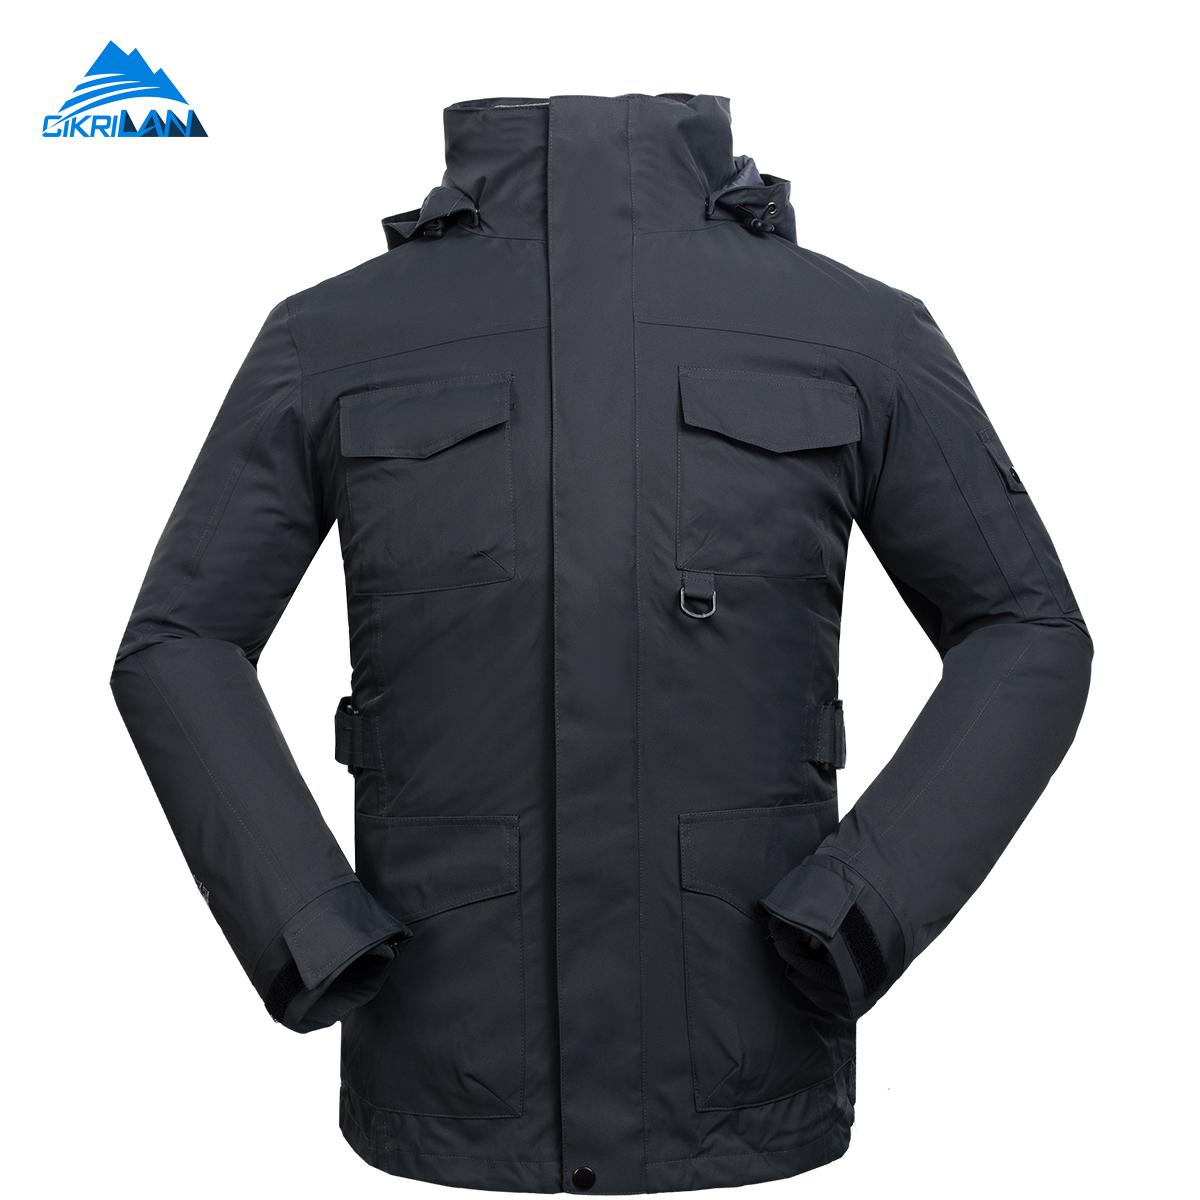 High Quality Winter Hiking Snowboard Ski Jacket Men Skiing Trekking Camping Waterproof Windbreaker Outdoor Sports Leisure Coat xim lamps projector bare lamp bulbs 915b403001 for mitsubishi wd 65c8 wd 73c8 wd 60c9 wd 65837 wd 65735